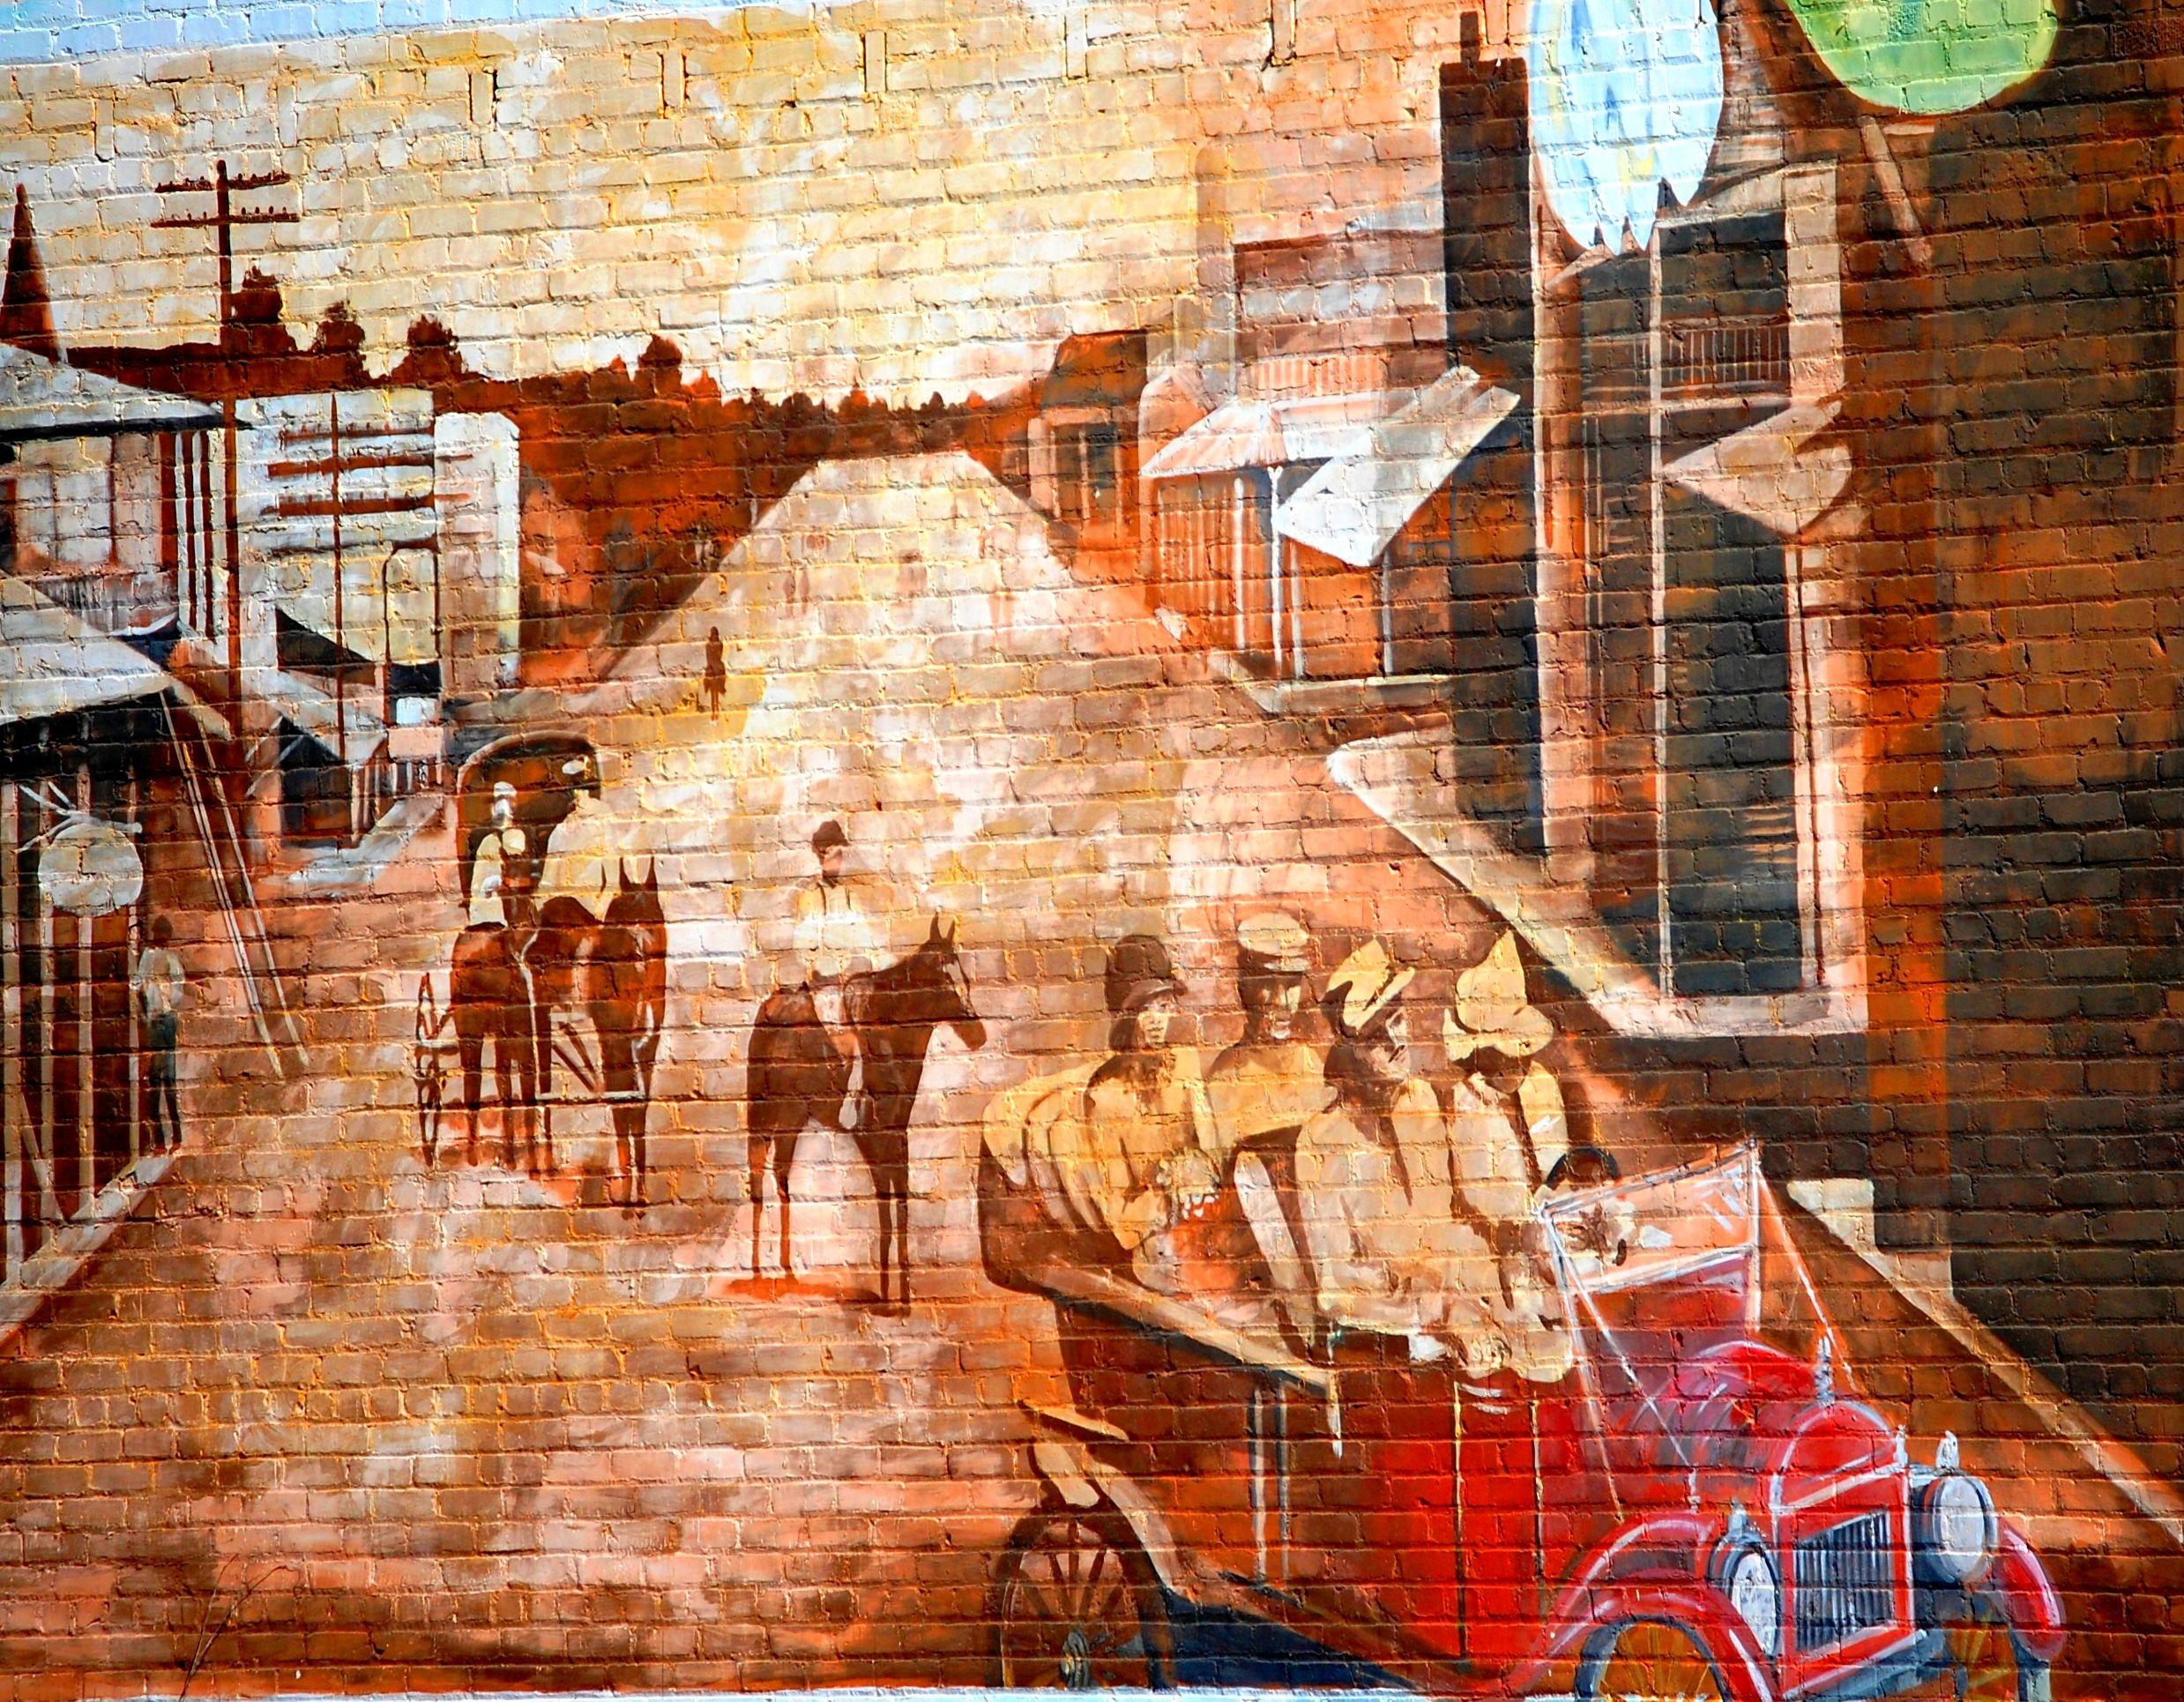 Wall mural depicting historic scene from vivian louisiana for Colonial mural wallpaper